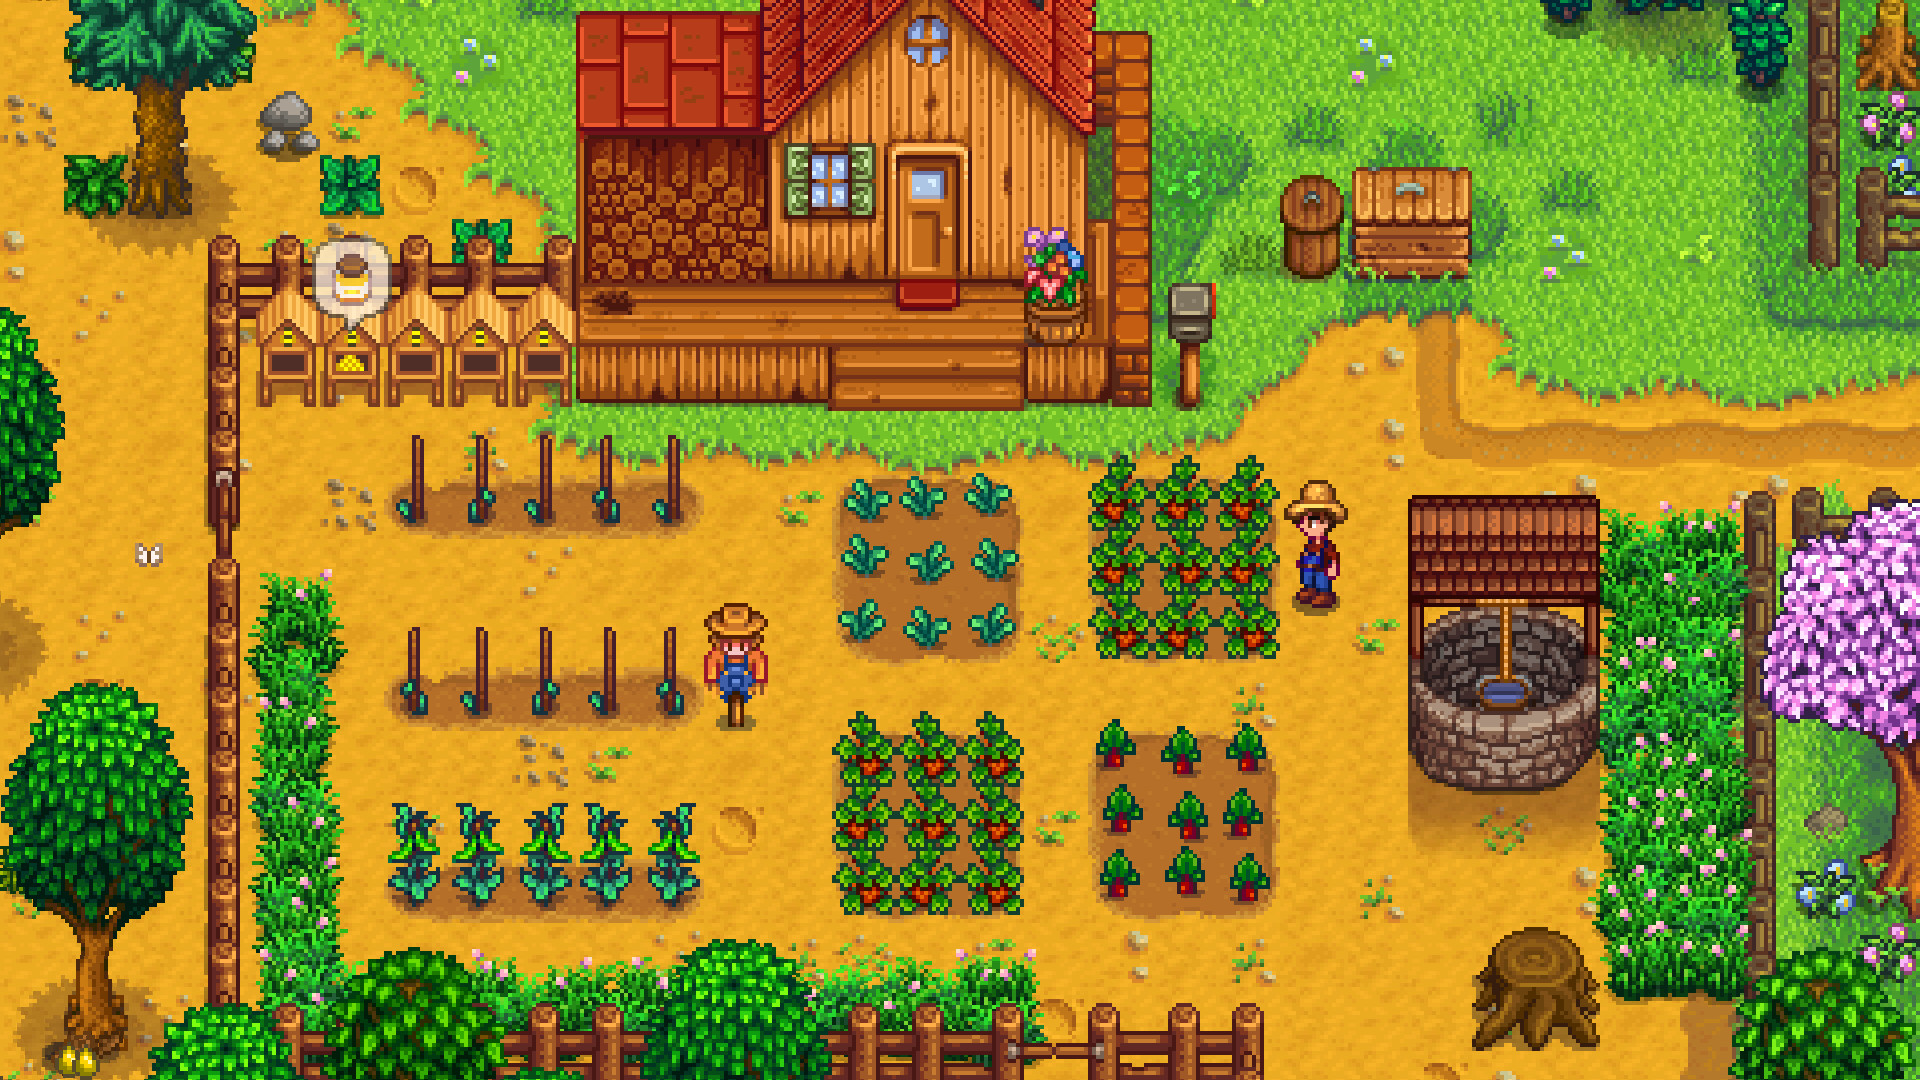 Stardew Valley is coming to iOS and Android